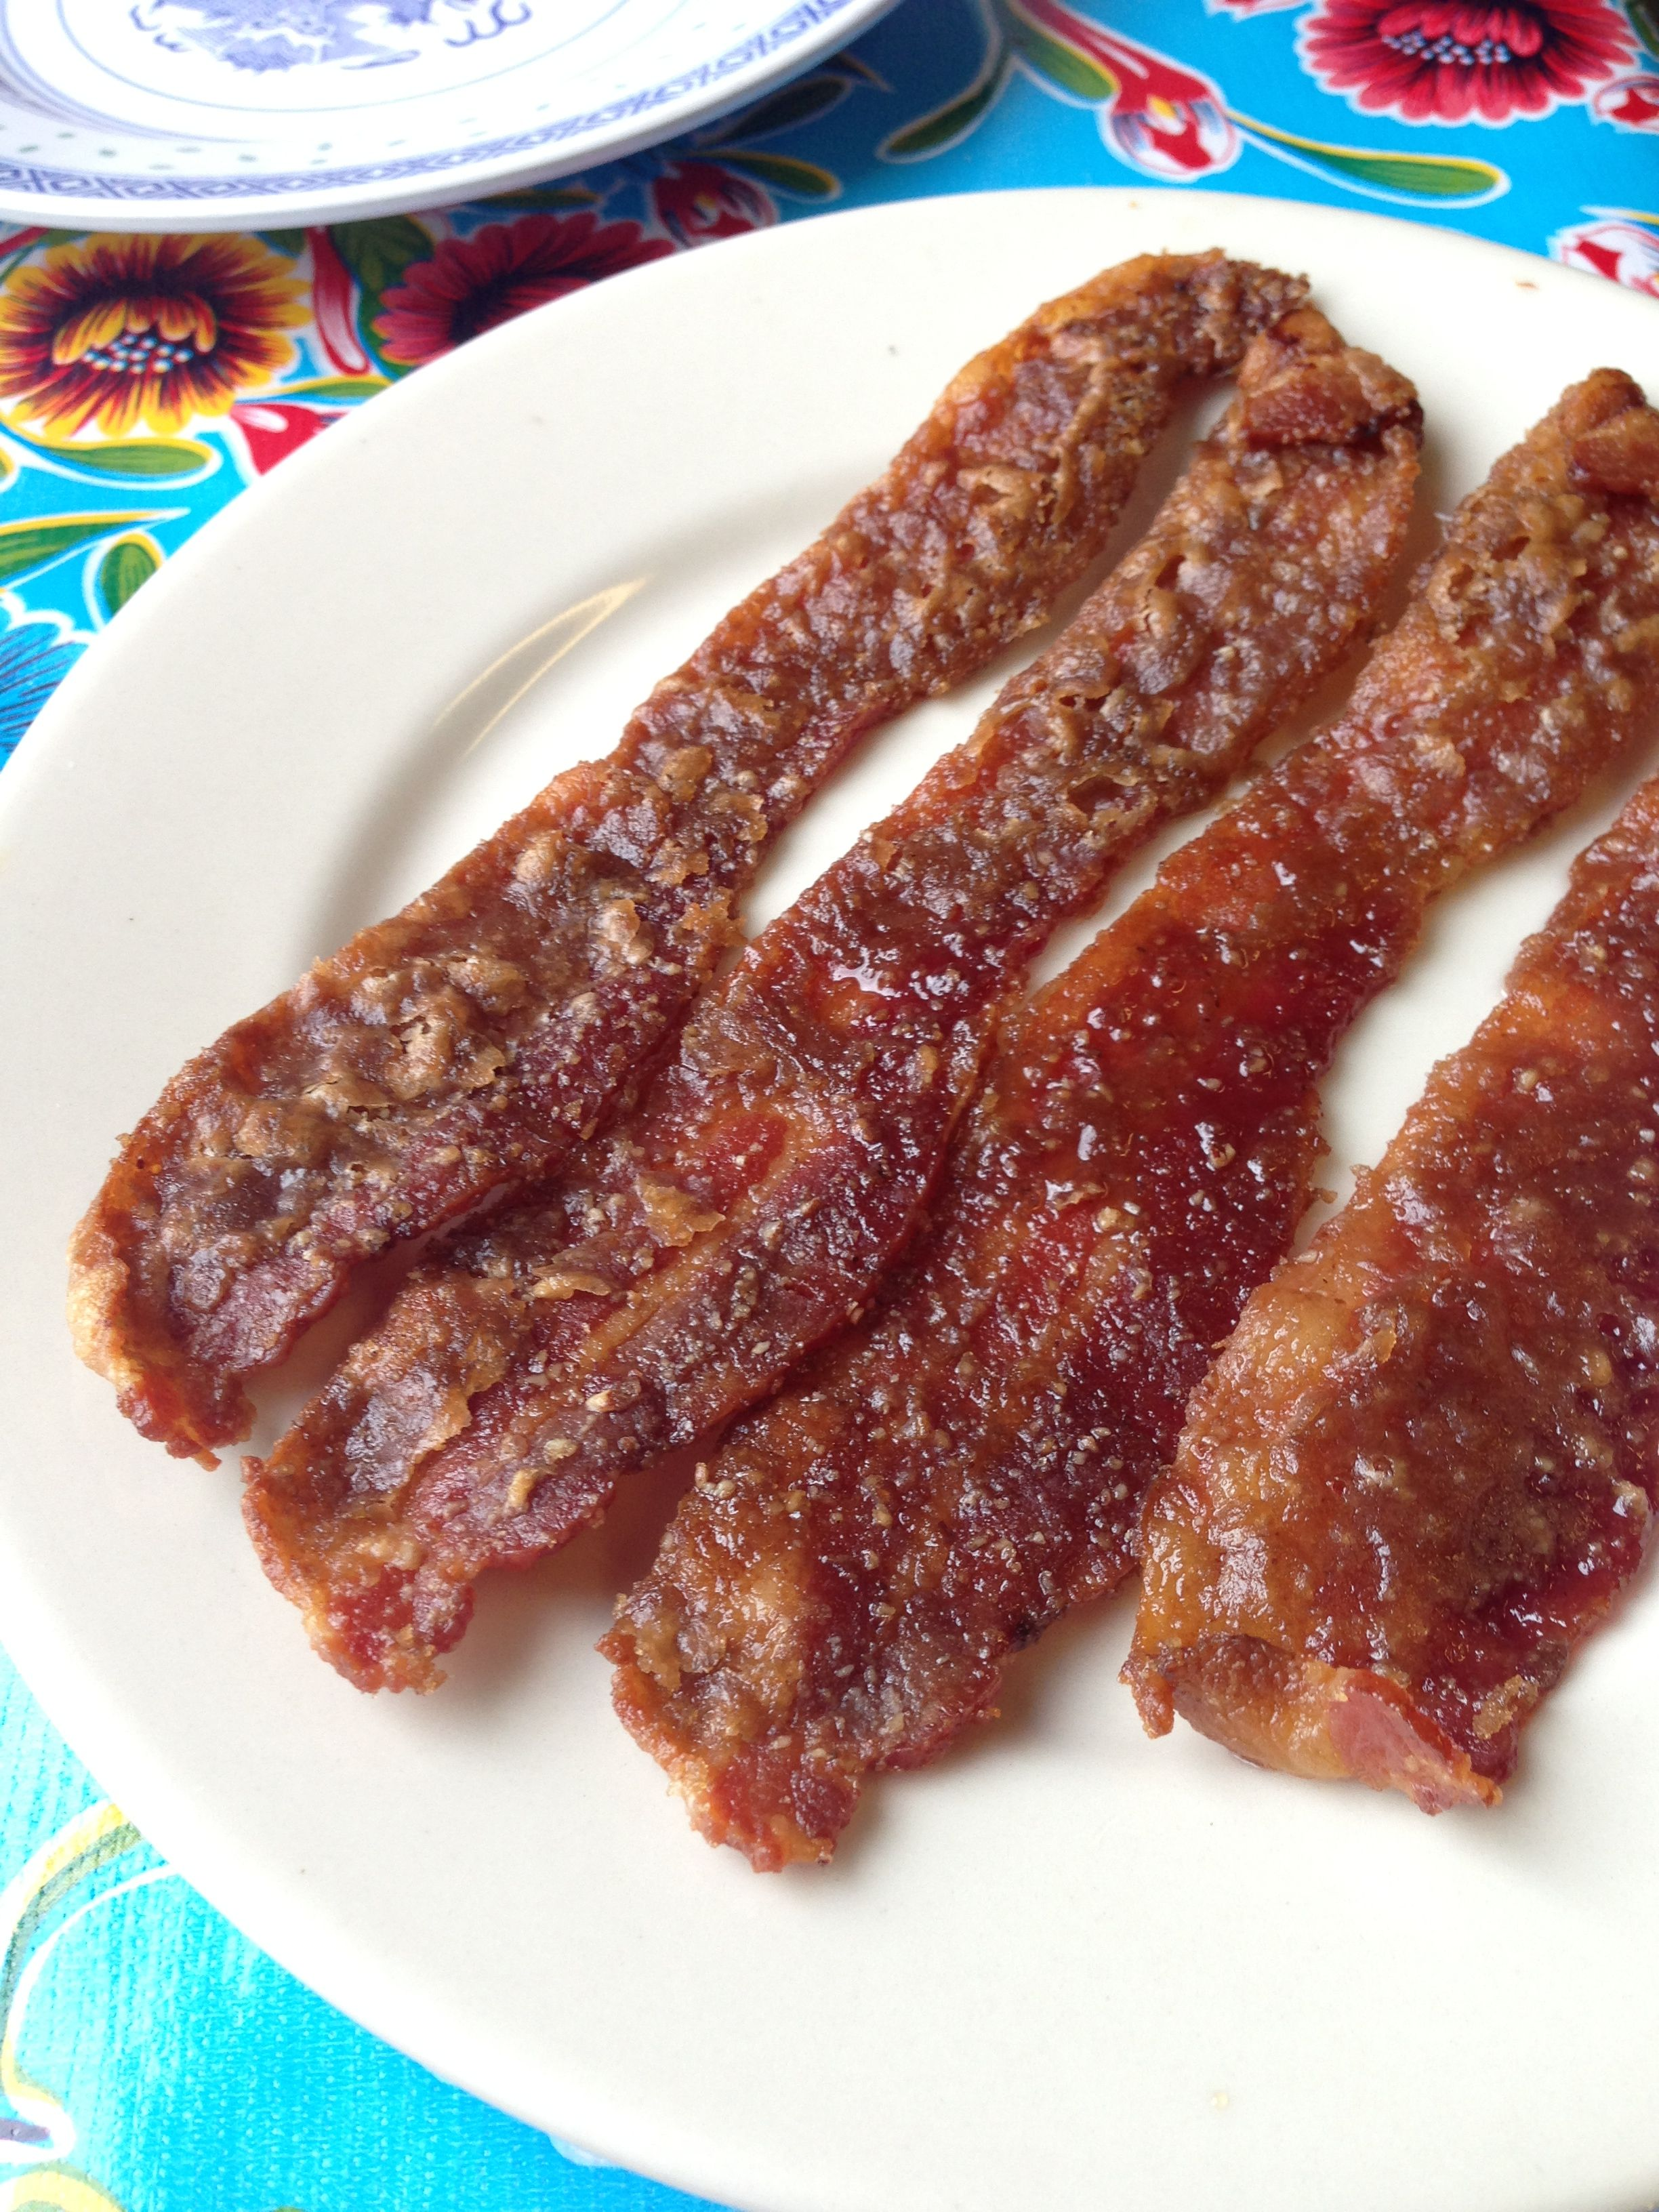 Praline bacon from Elizabeth's | Good Eat'in! | Pinterest